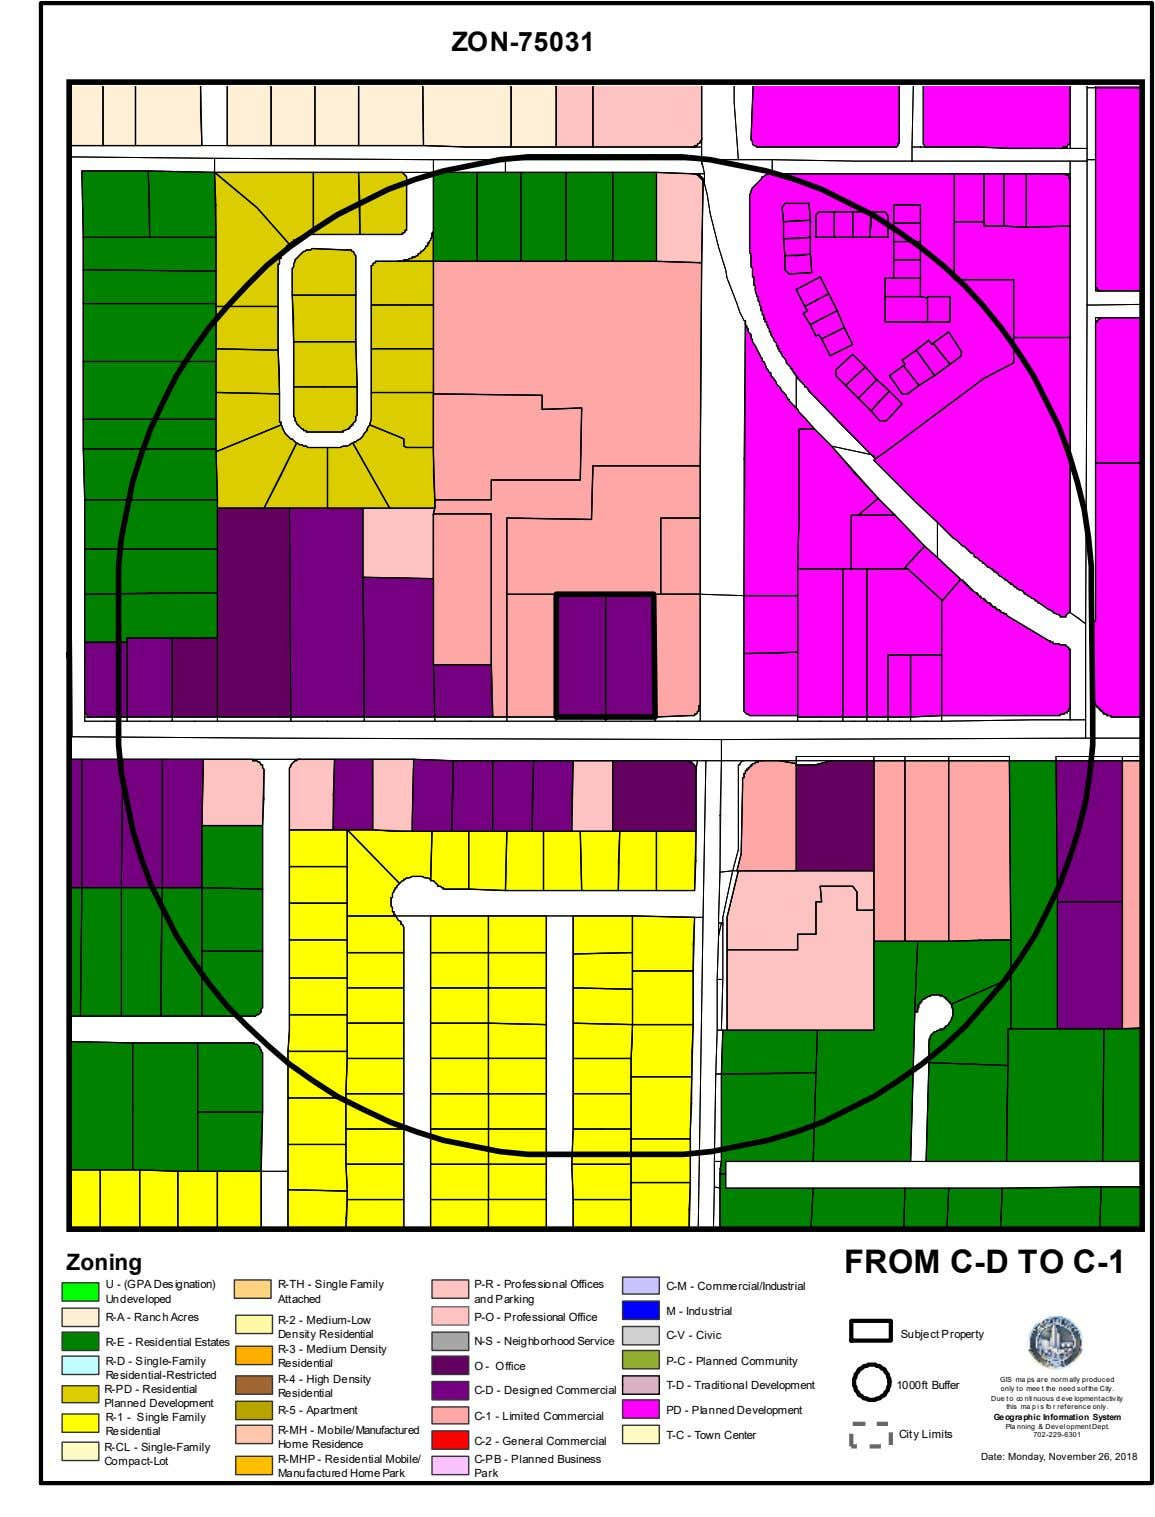 ZON-75031 Zoning FROM C-D TO C-1 U - (GPA Designation) Undeveloped R-TH - Single Family